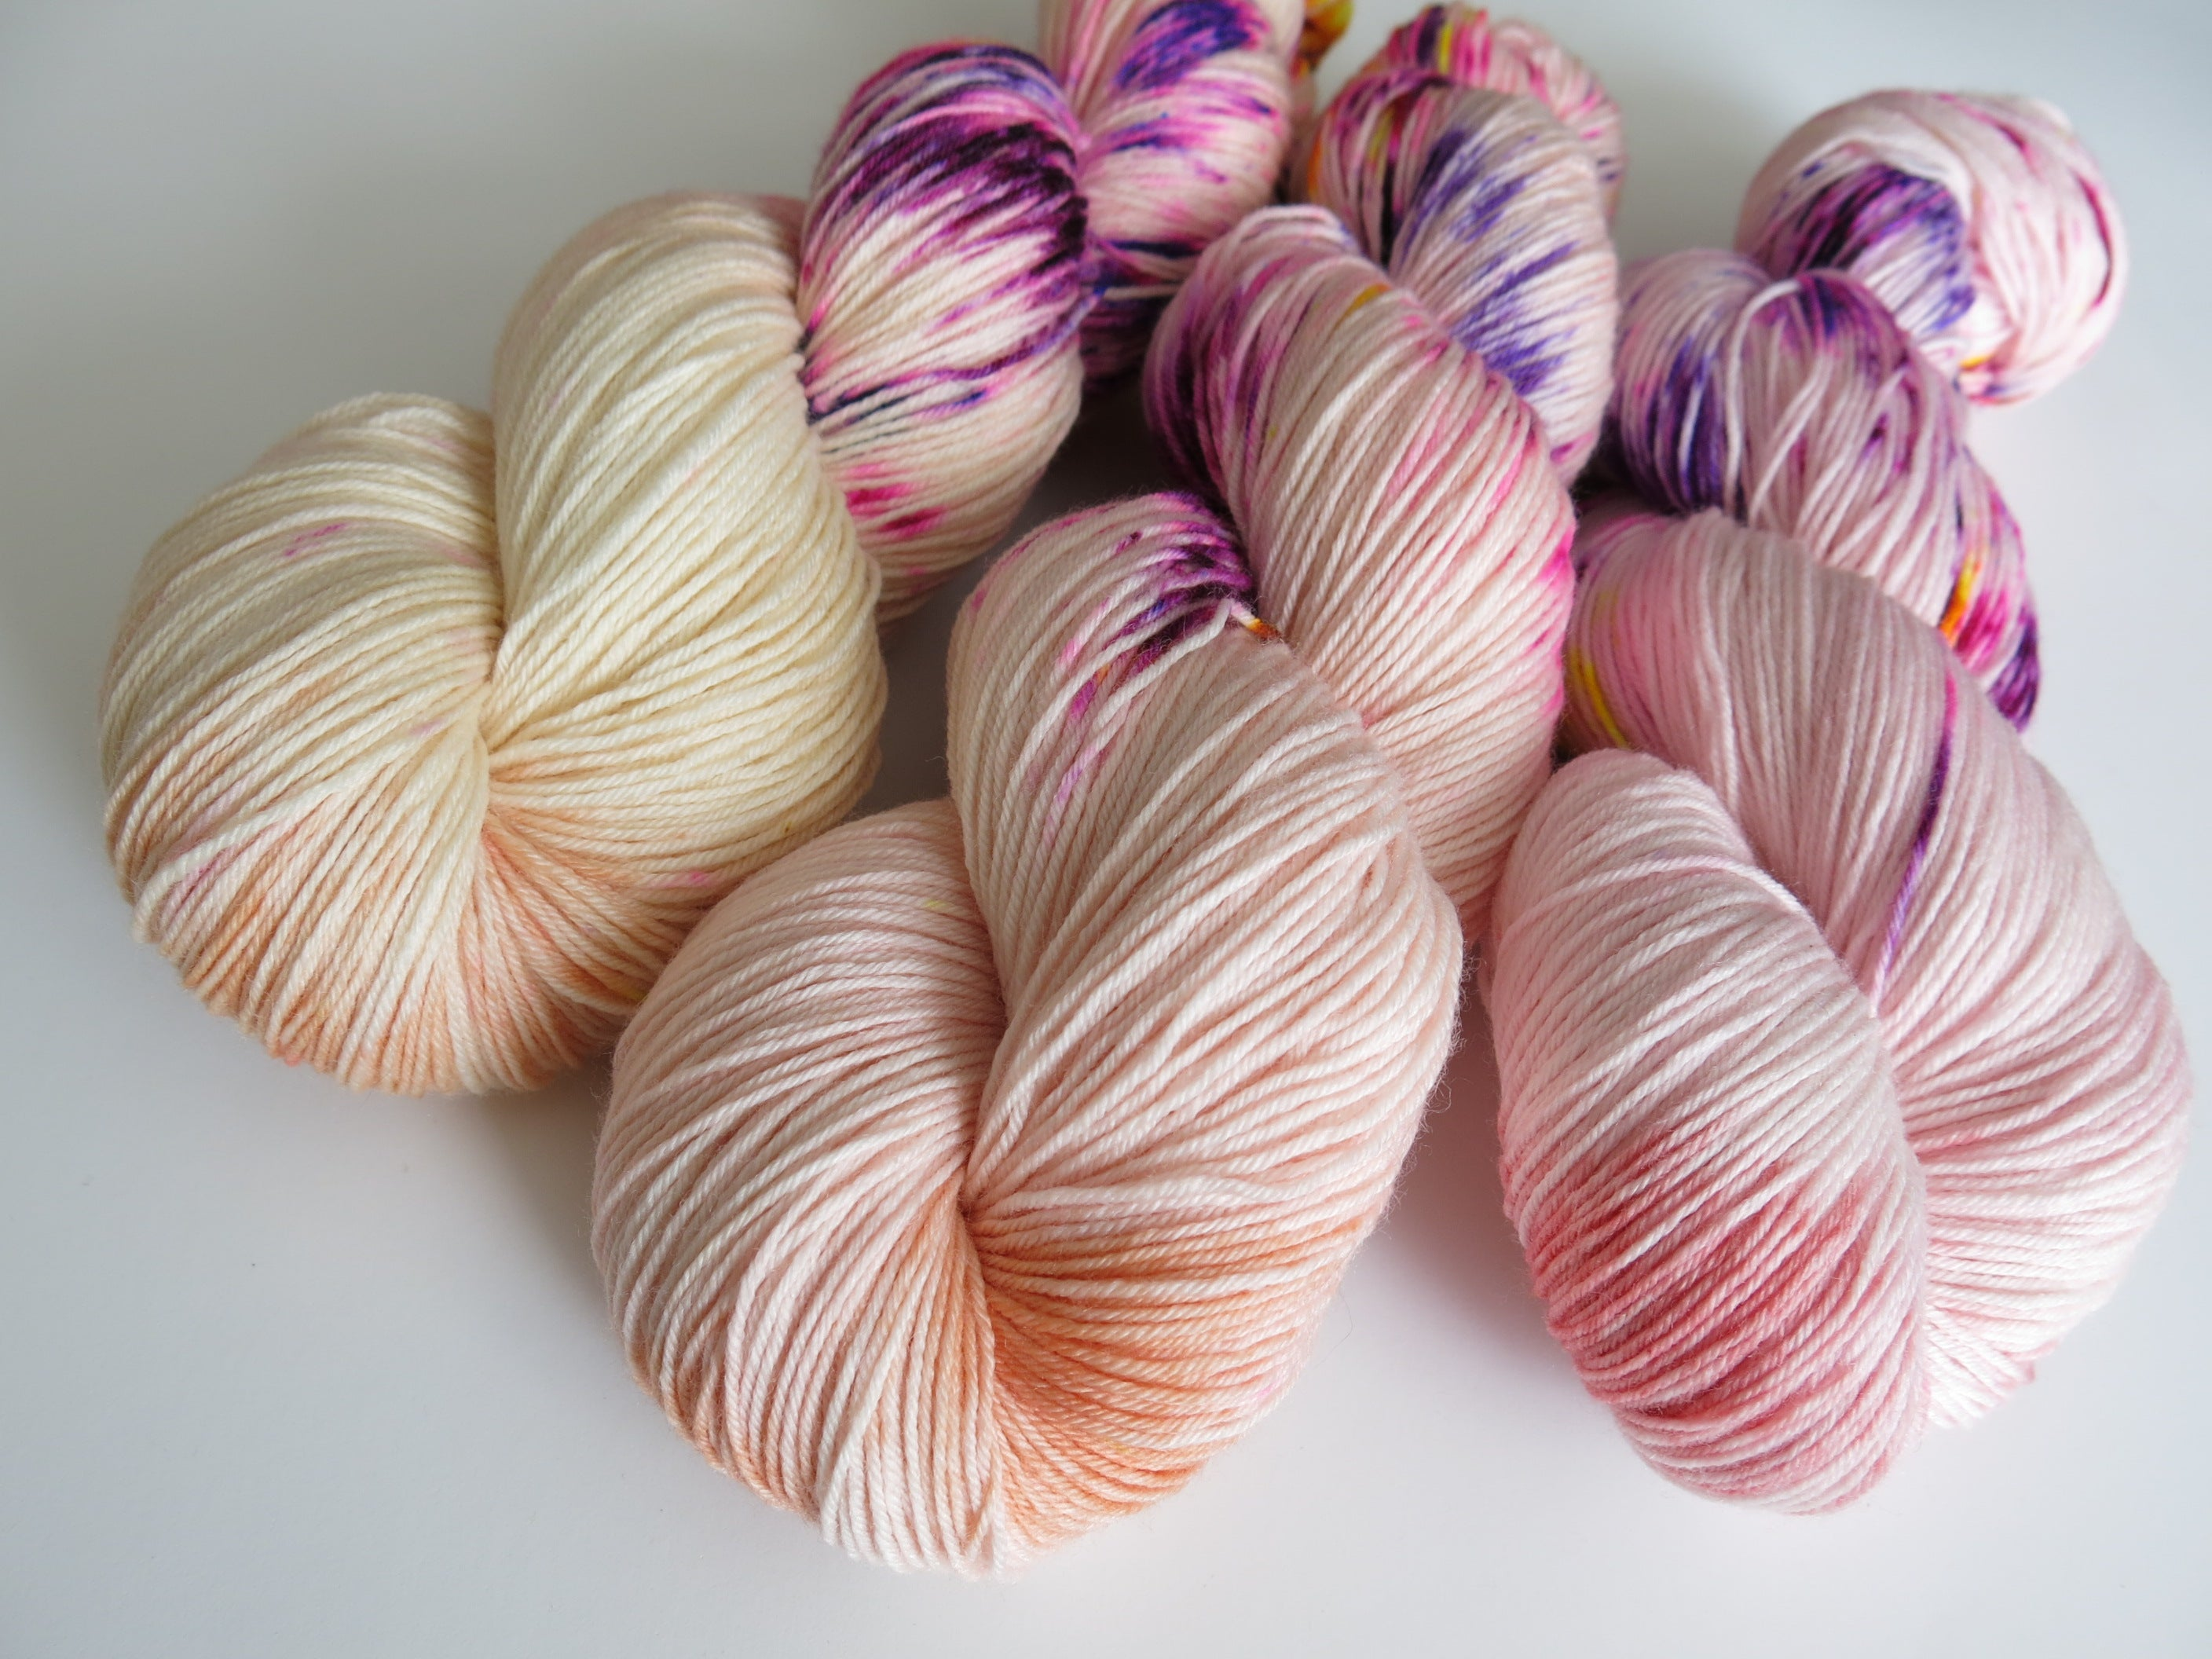 hand dyed merino and nylon sock yarn in flesh tones